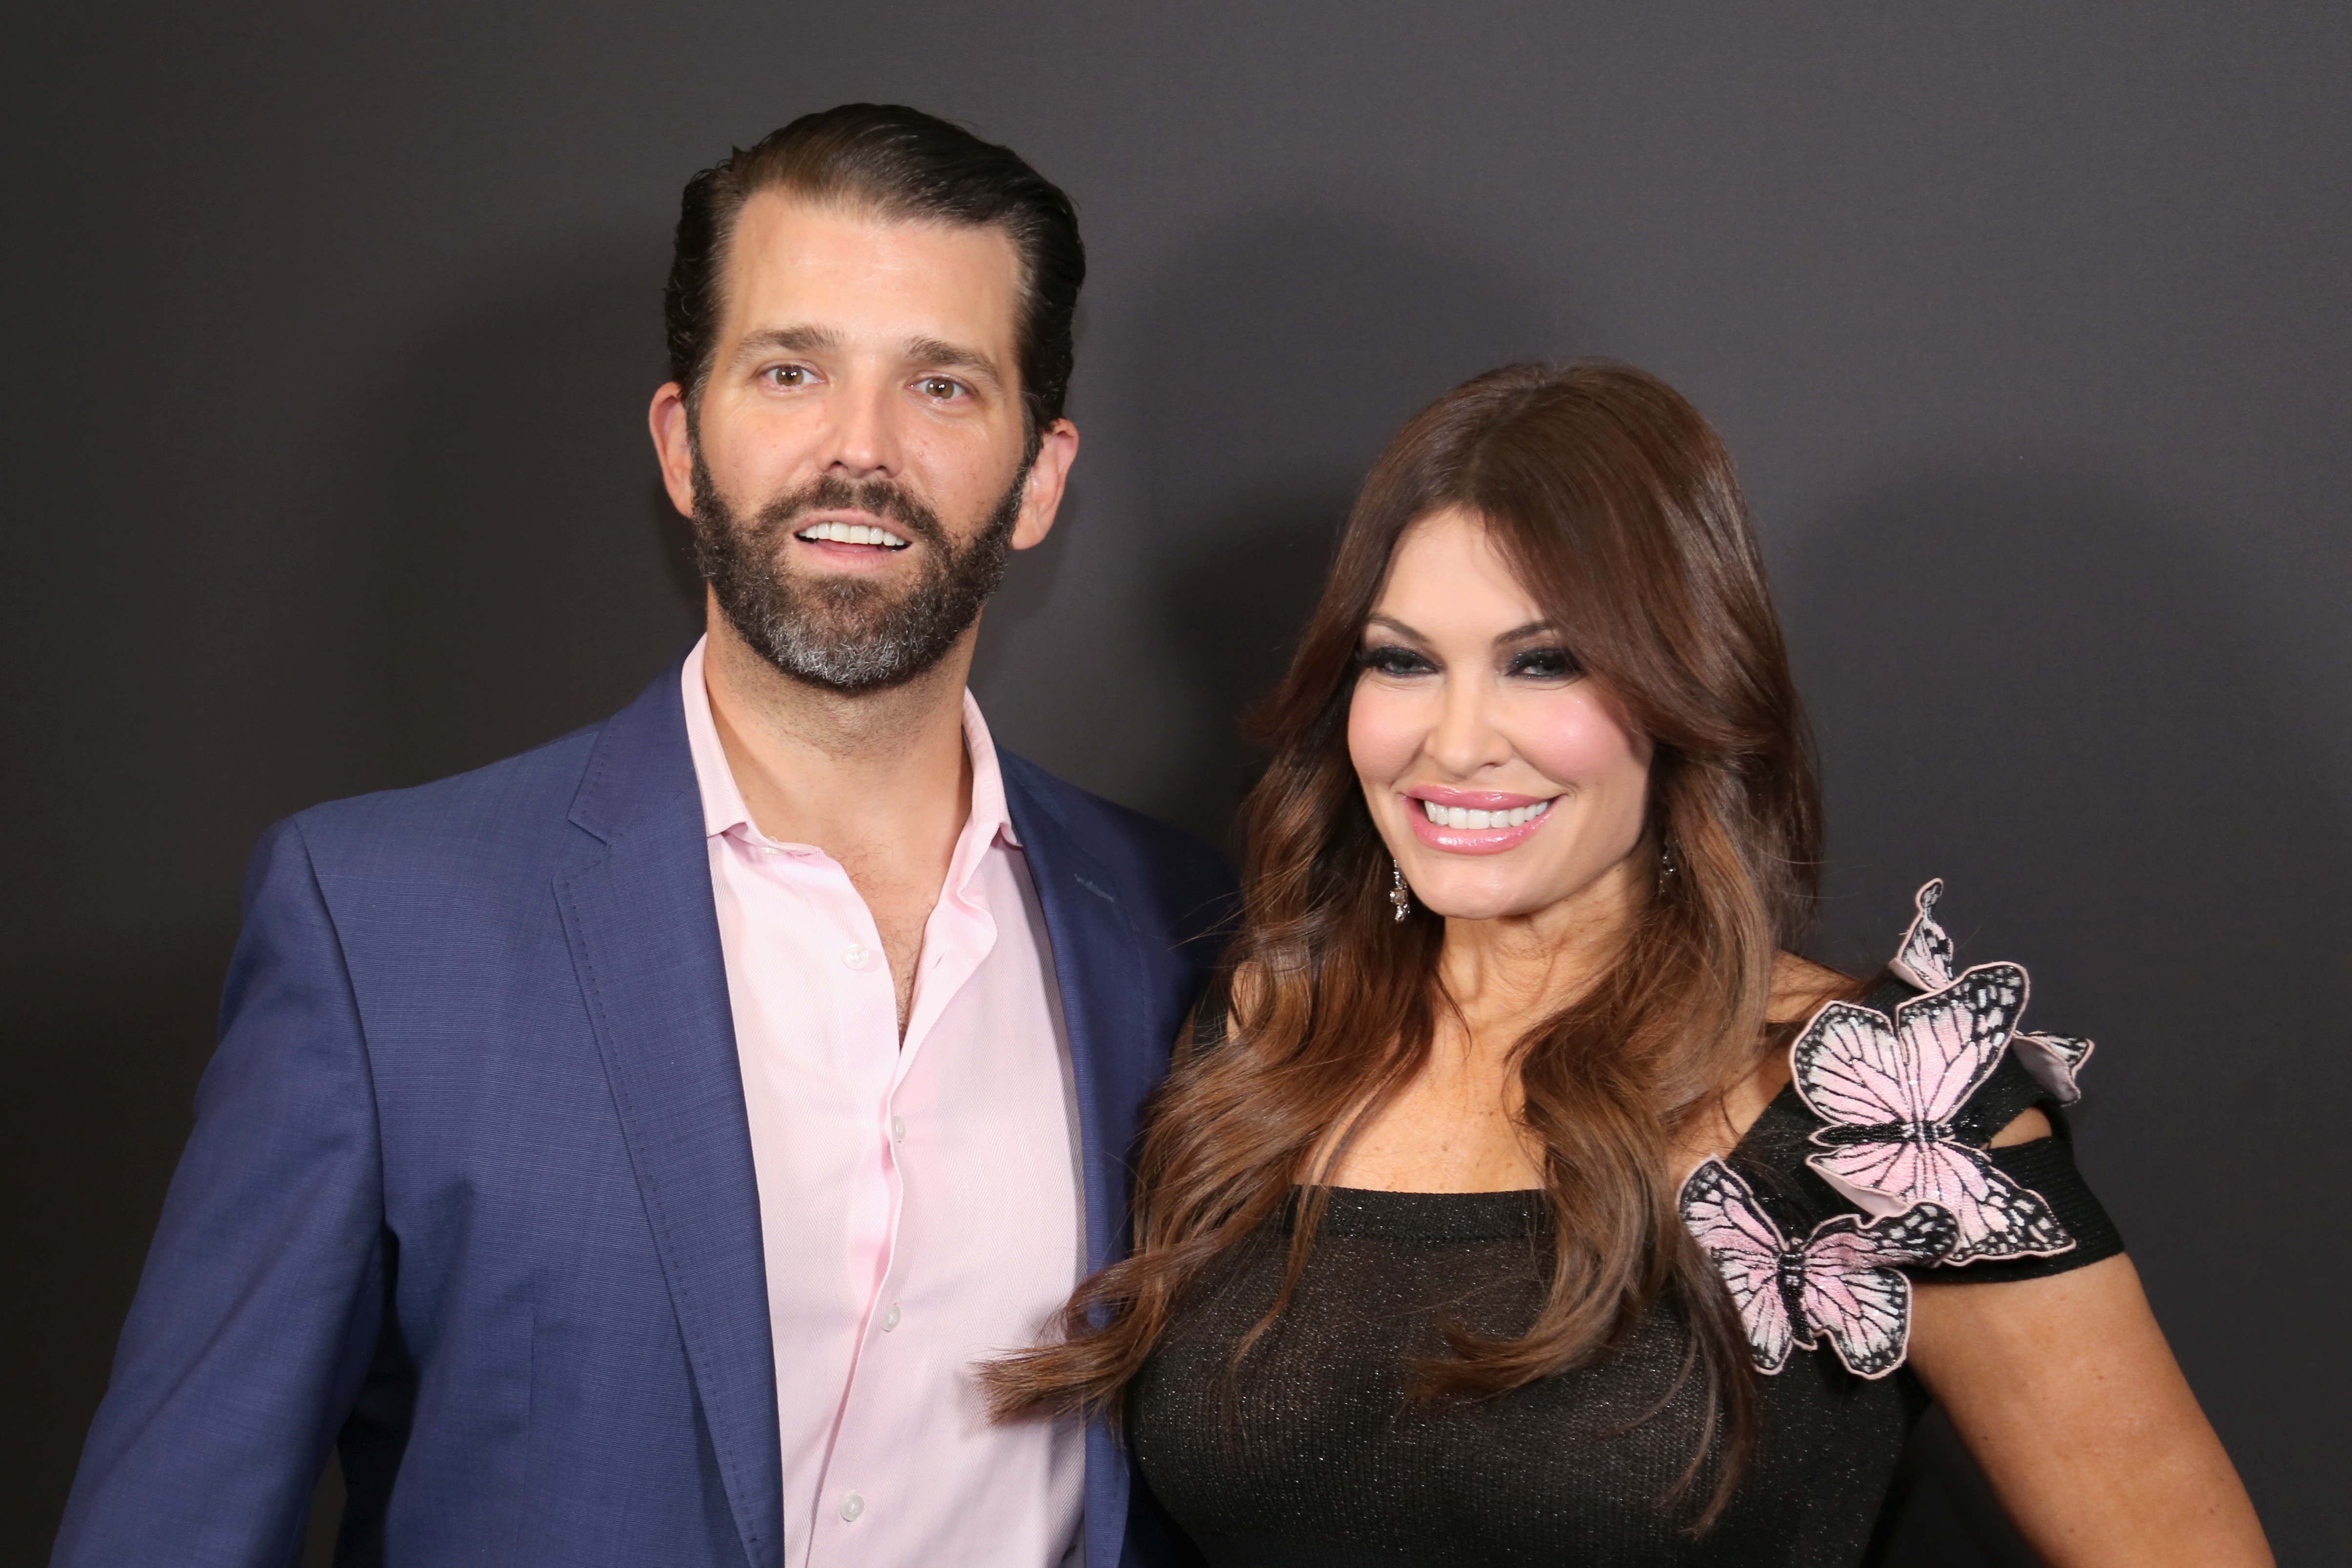 Of Course Donald Trump Jr. Went to That Bar That Banned Solo Women for Valentine's Day